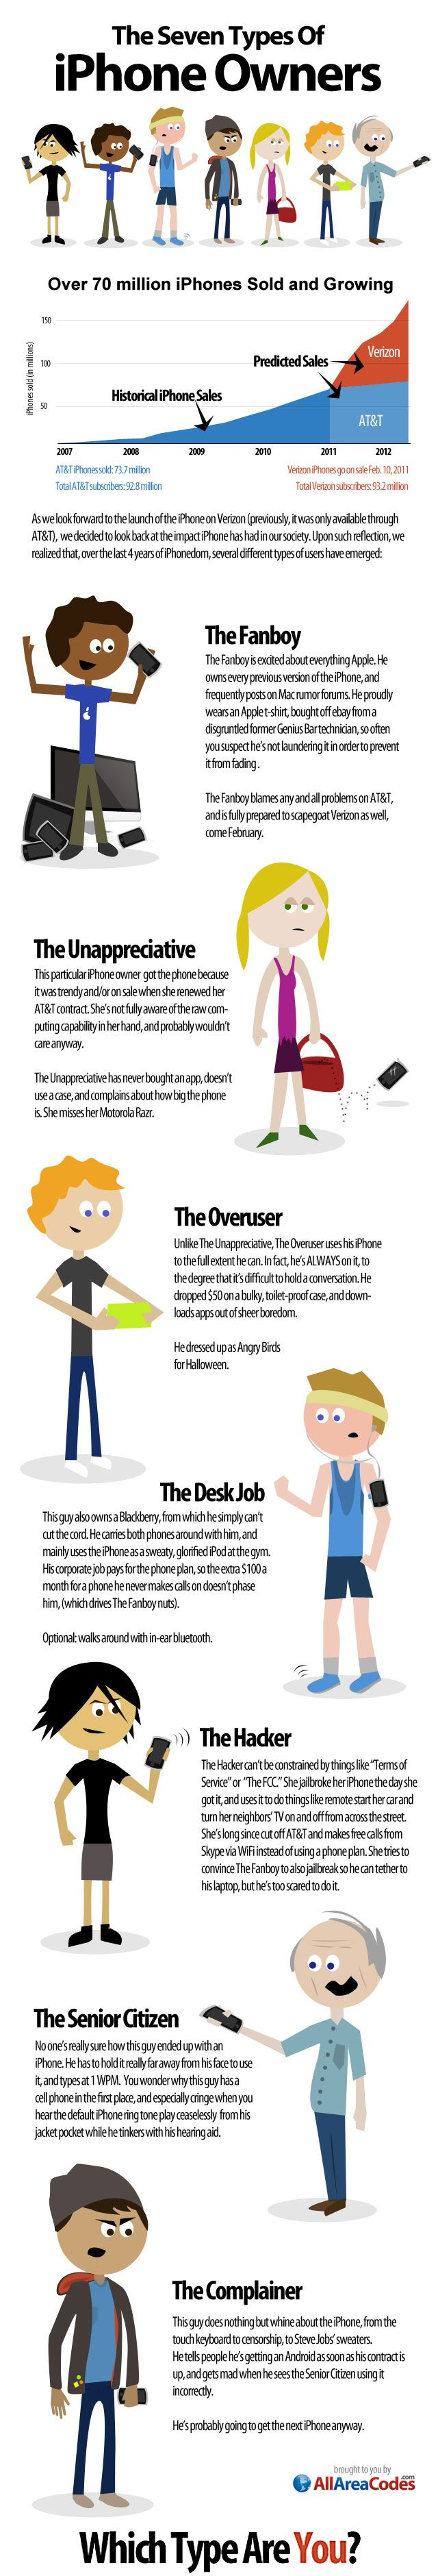 Comparison: 7 Types of #iPhone Owners – Which one are You? #infographic #Apple